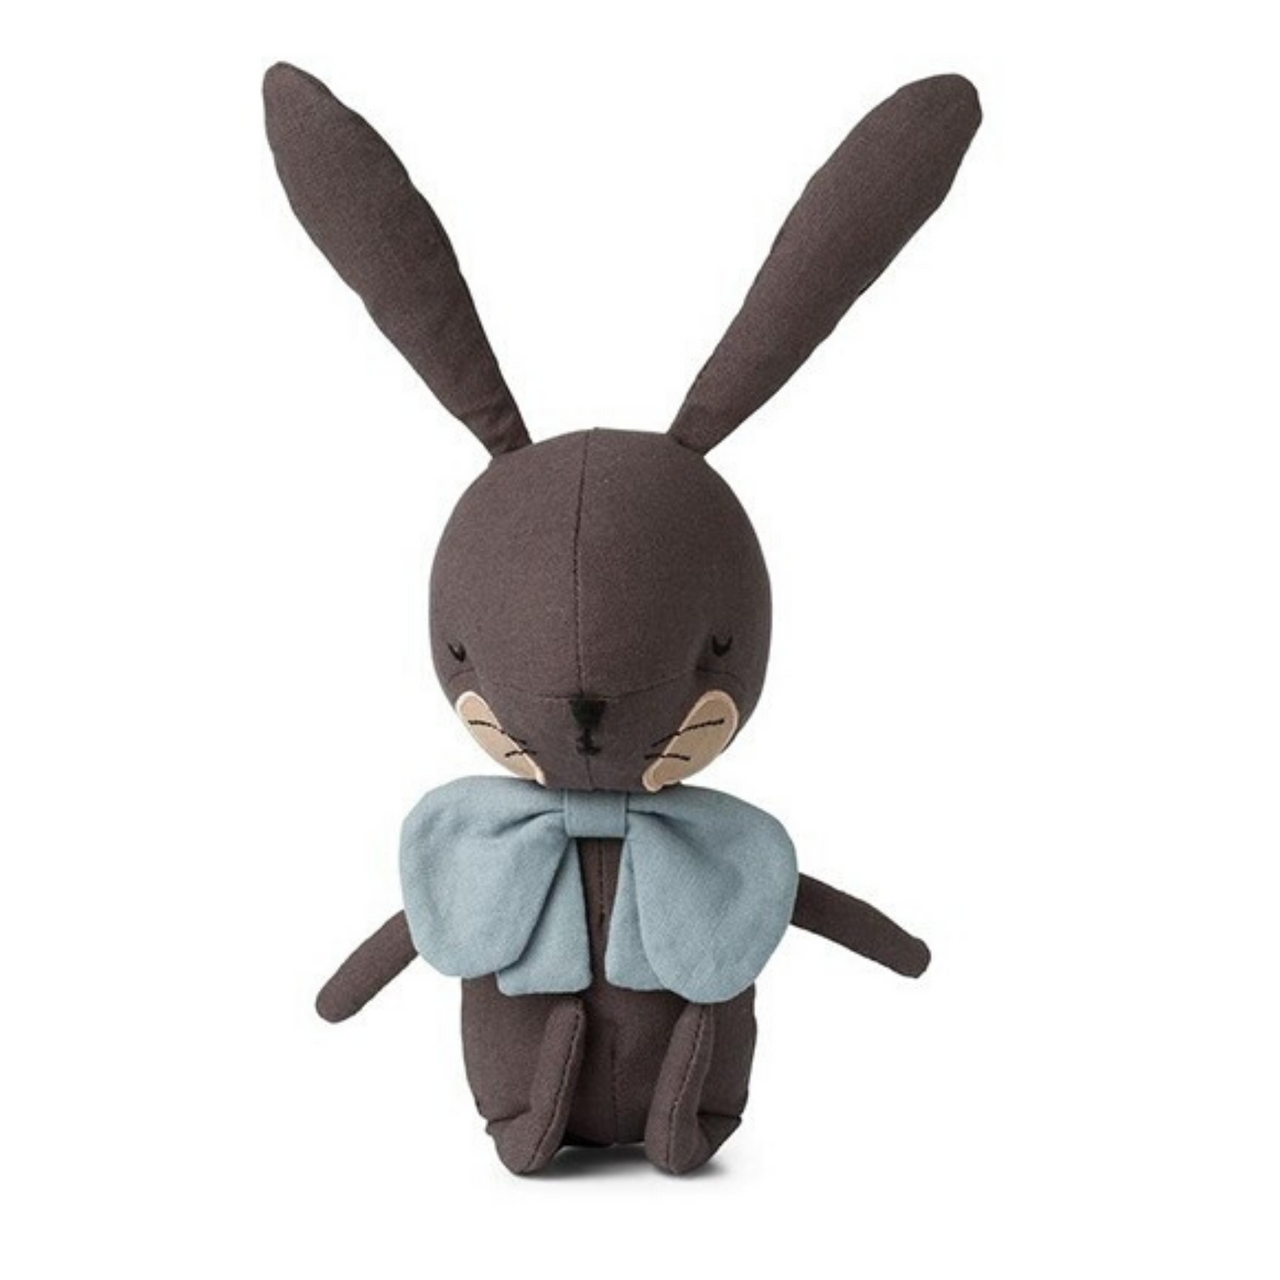 Adorable dark grey cotton fabric rabbit soft toy with a large padded face, long padded ears and beautiful stitched sleepy eyes, nose and whiskers. He's wearing an oversized blue bow tie which makes him a very dapper chap.